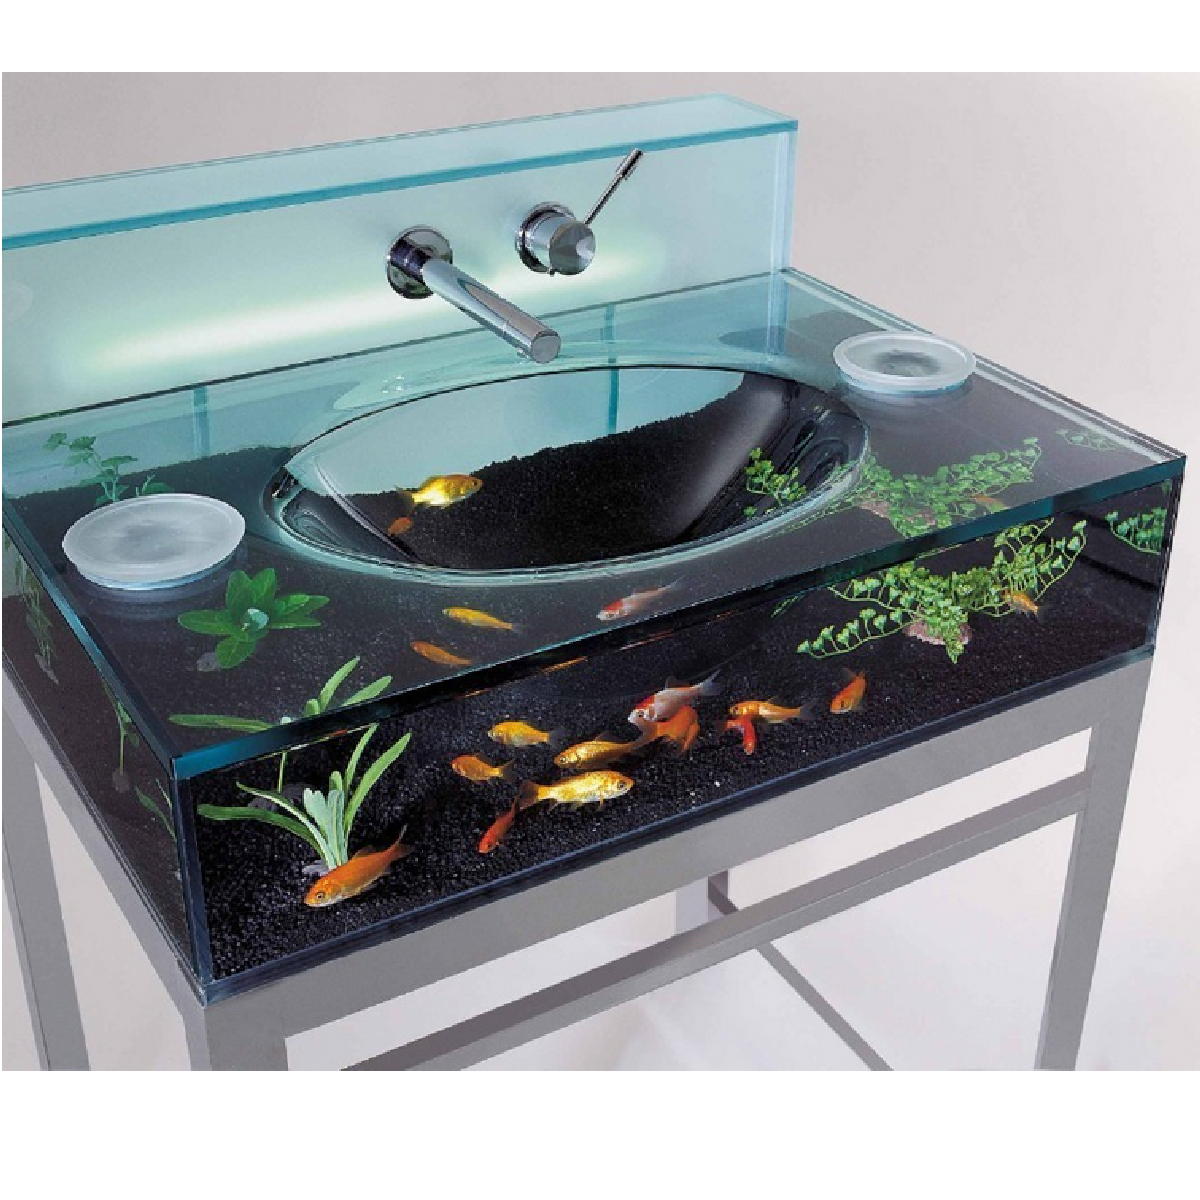 cadeaux 2 ouf id es de cadeaux insolites et originaux des aquariums insolites et originaux. Black Bedroom Furniture Sets. Home Design Ideas